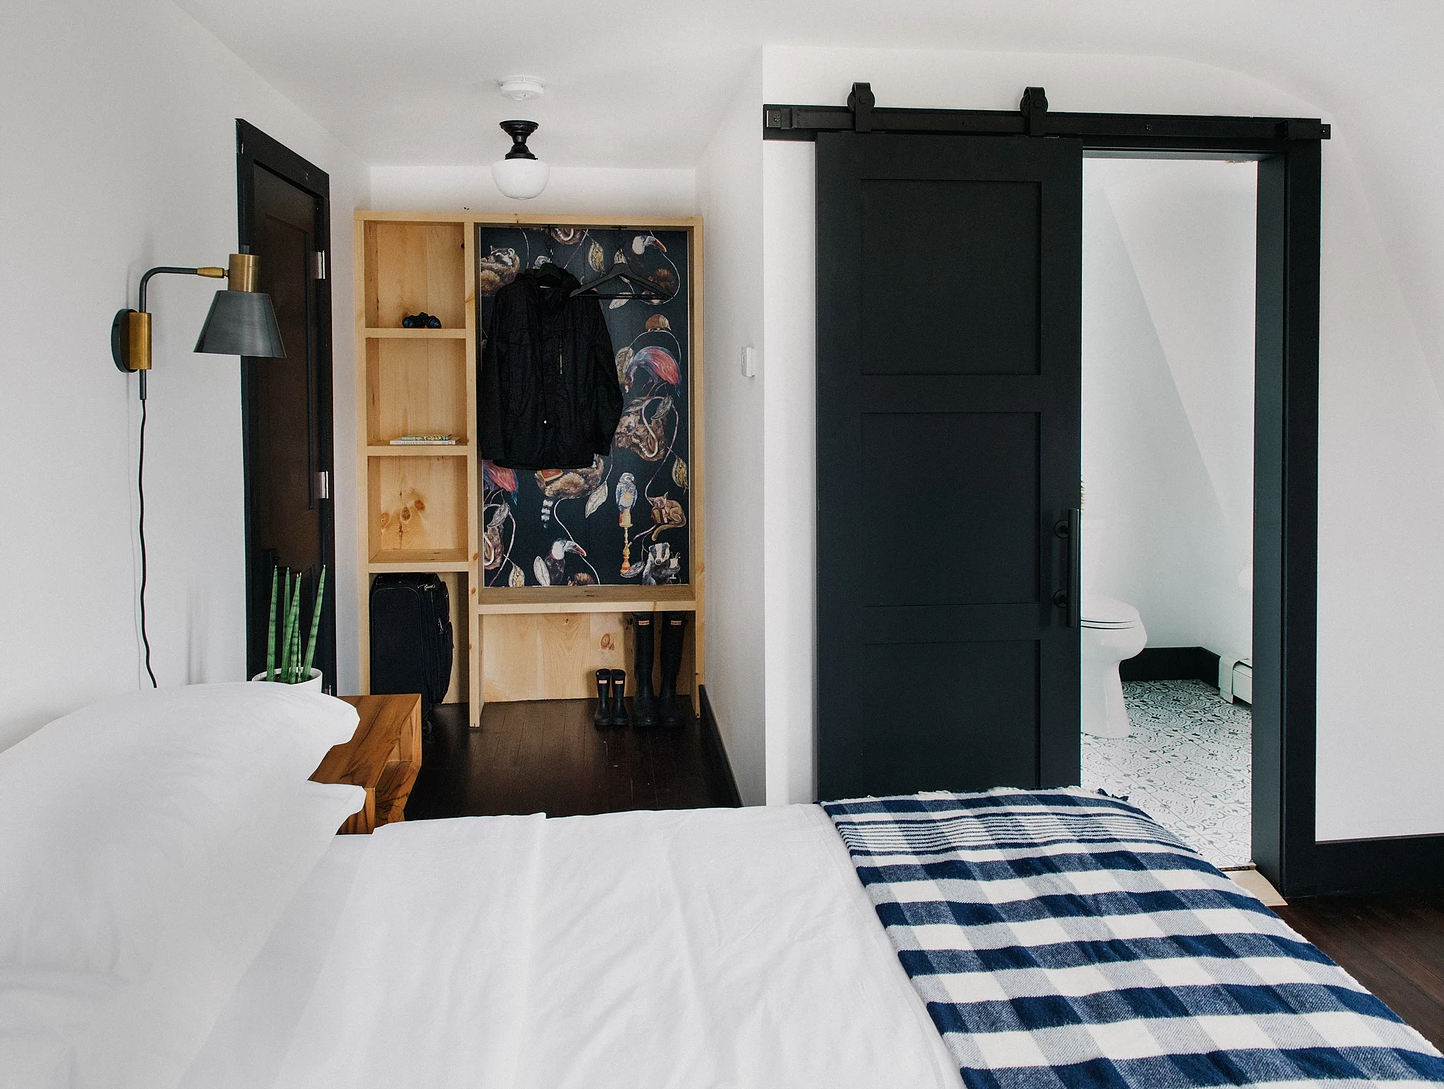 Bedroom, Bed, Dark Hardwood Floor, Night Stands, Ceiling Lighting, Wall Lighting, and Shelves Planked with reclaimed wood and awash in a muted color palette with pops of navy, black and white, the King rooms invoke Scandinavian design energized by the hotel's backcountry.  Eastwind Hotel & Bar